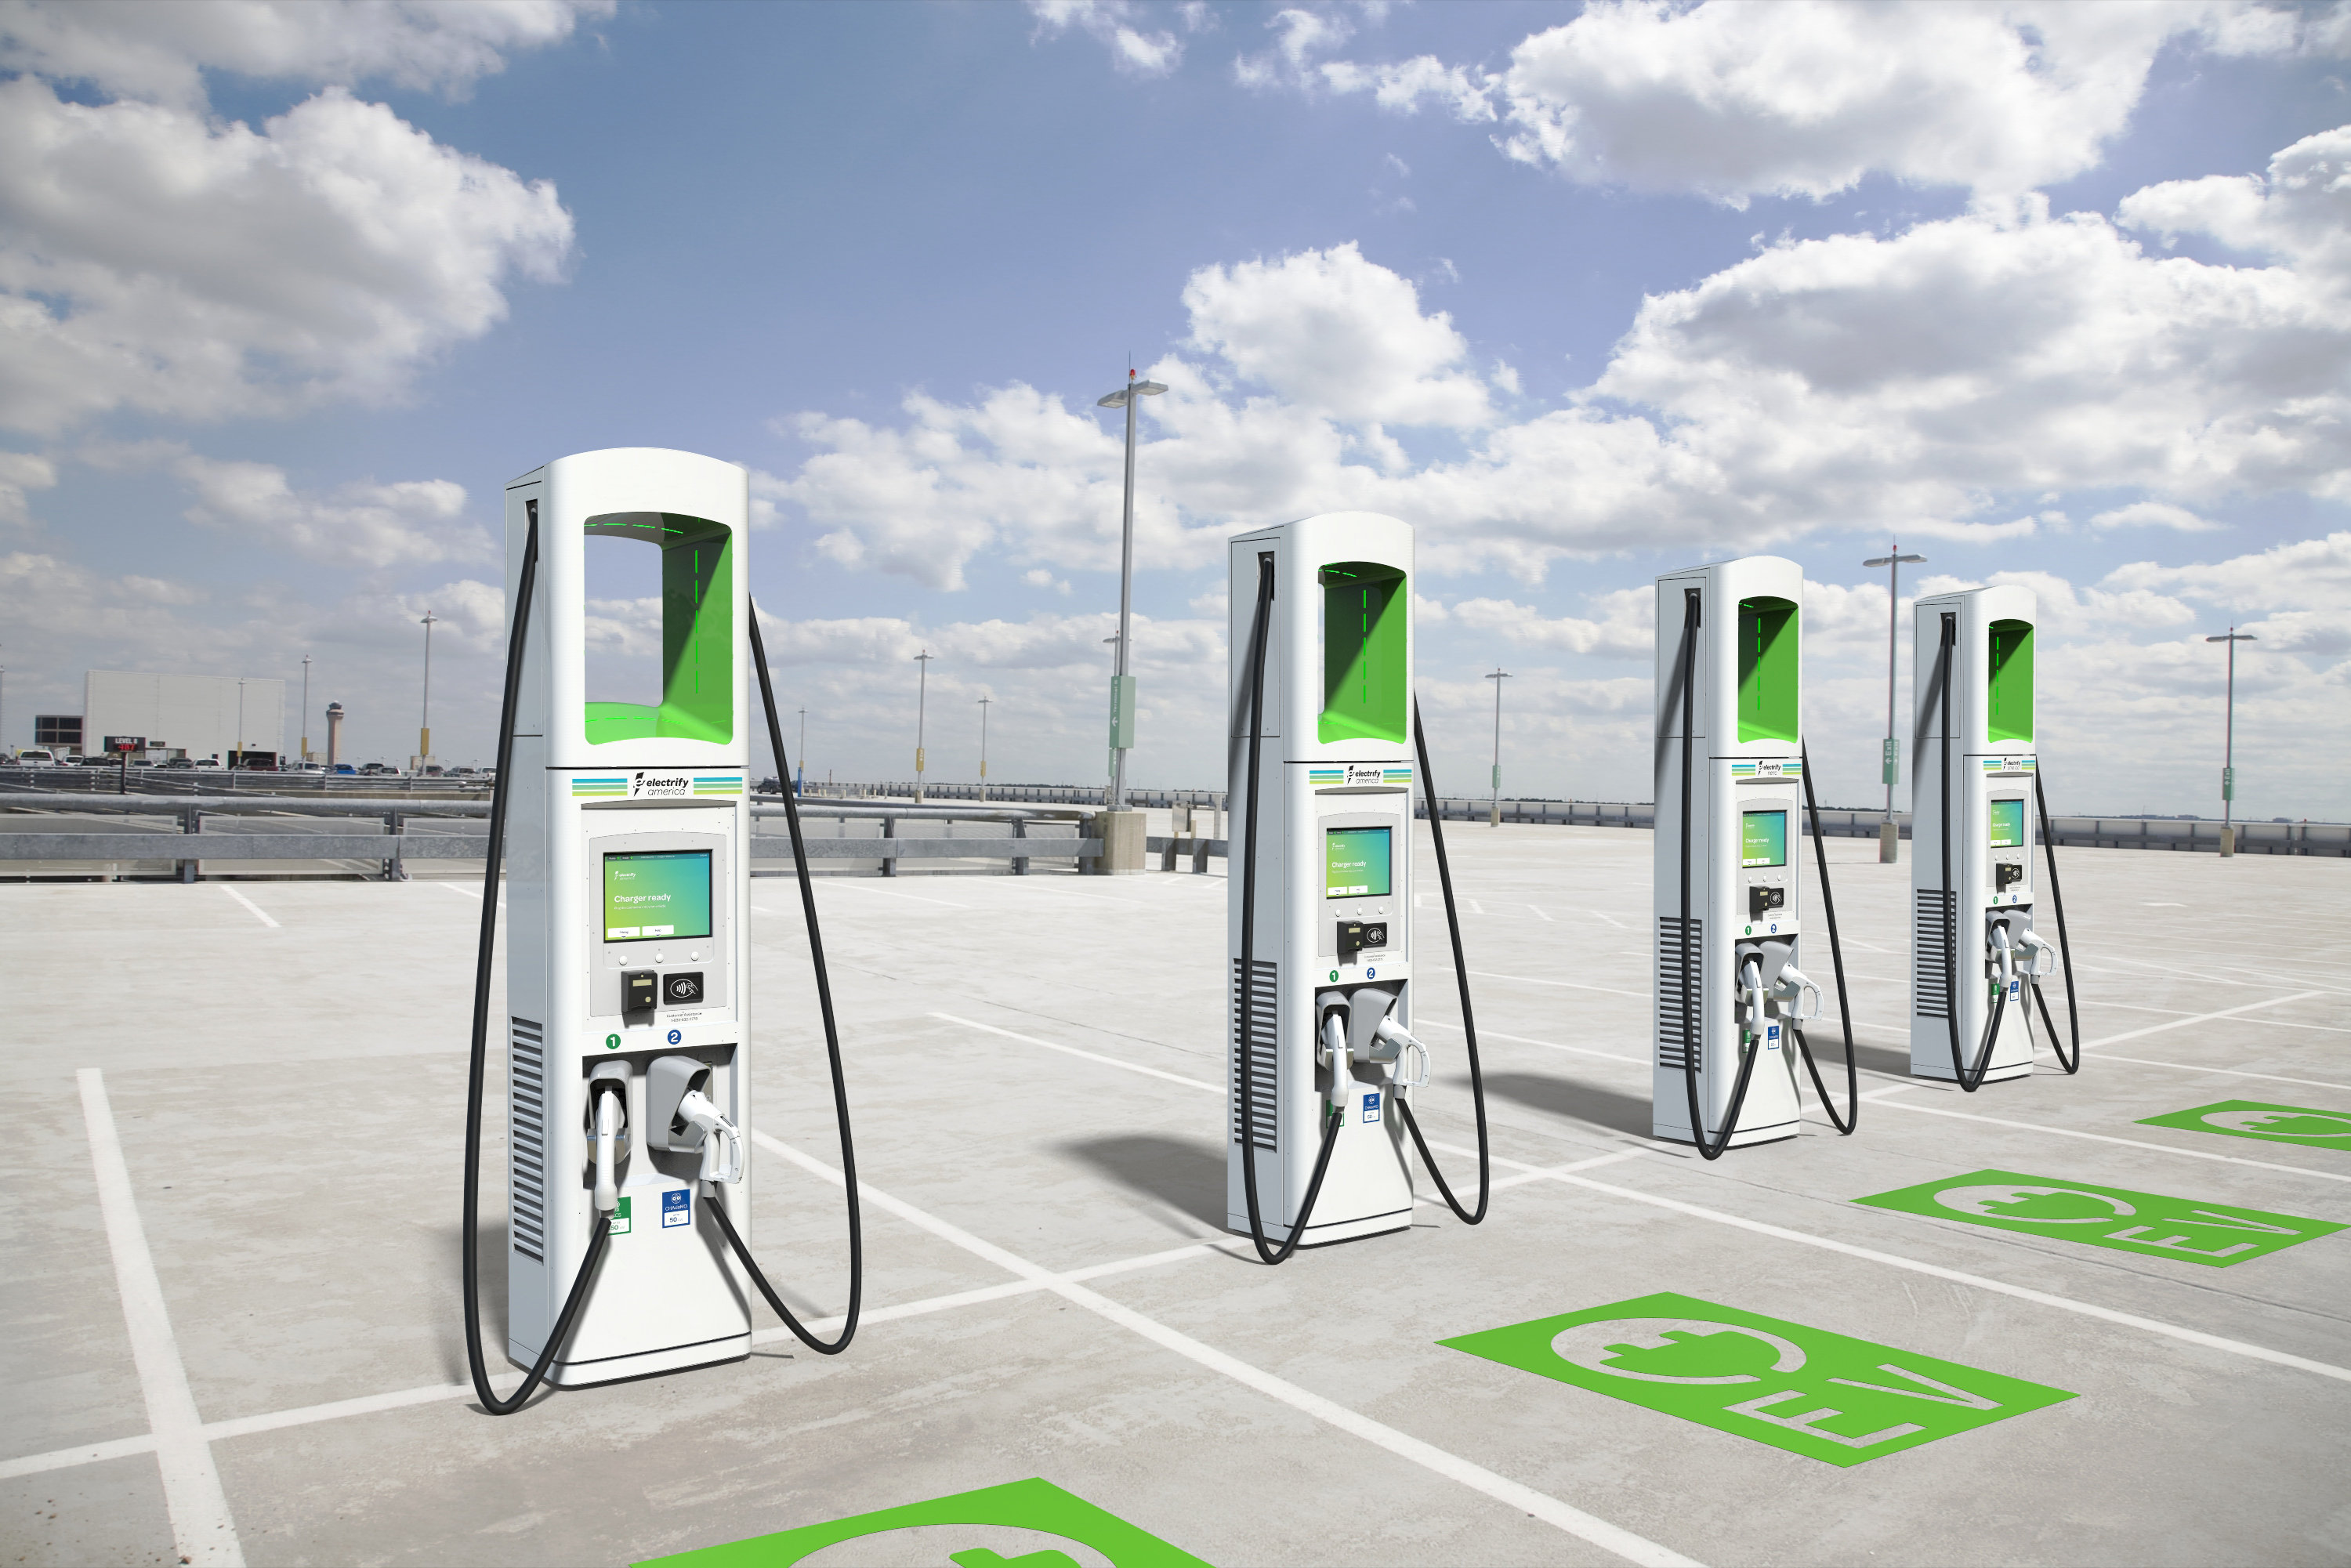 Electrify America Will Deploy 2000 350kw Fast Chargers By The End Jaguar X Type Fuel Filter Location Enlarge Abb Btc Power Efacec And Signet Work With On This New Network Of Ev